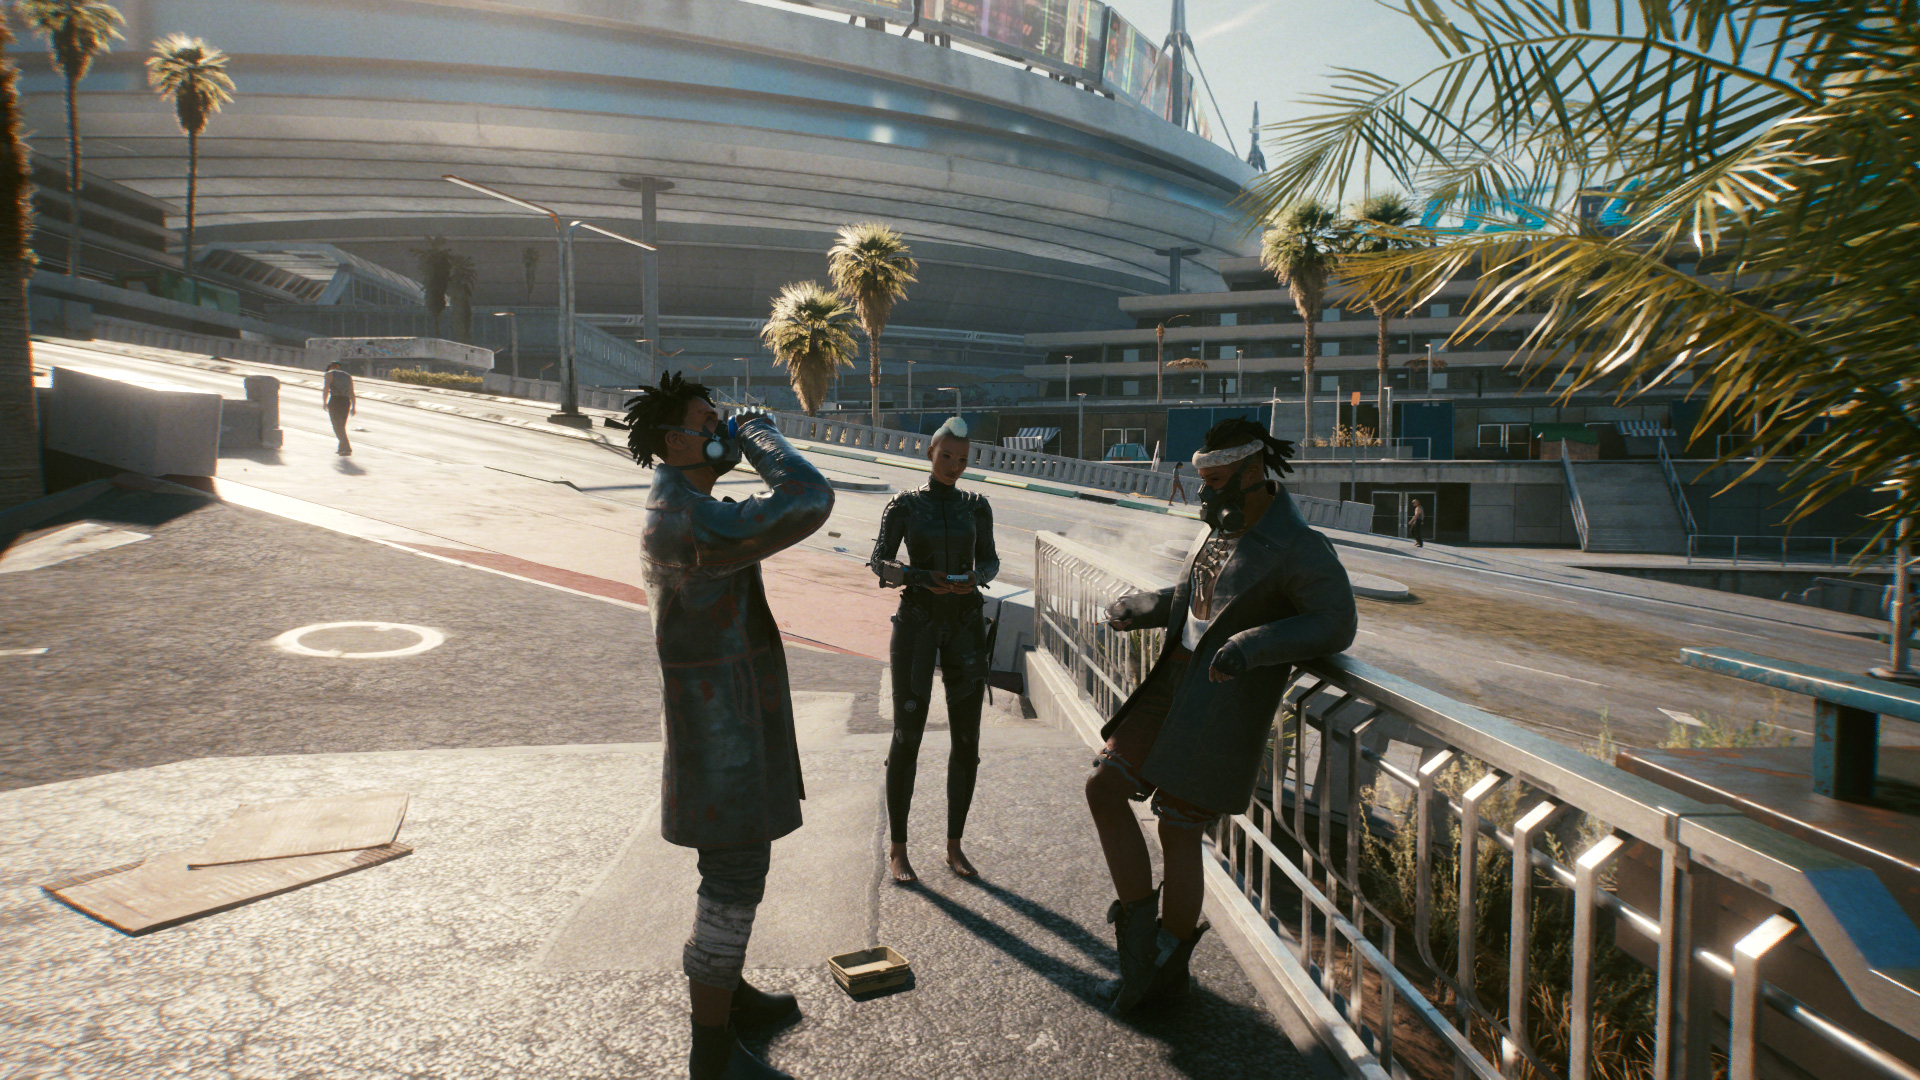 Should you side with NetWatch or Voodoo Boys in Cyberpunk 2077?